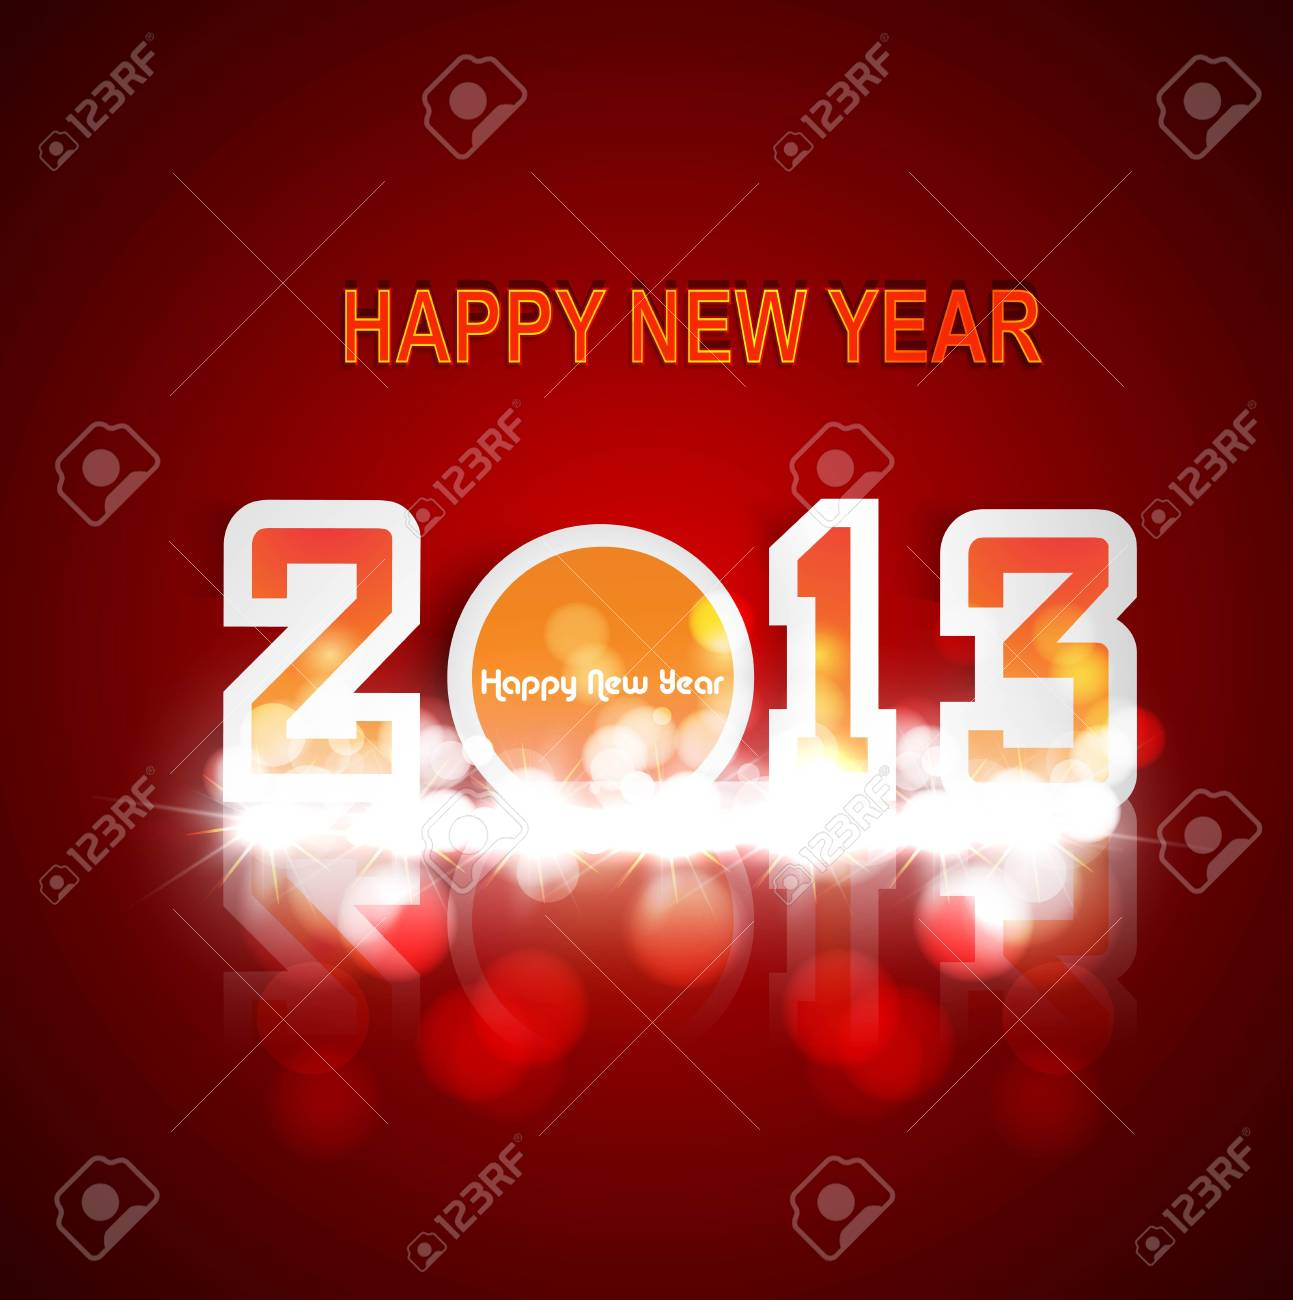 2013 new year circle celebration colorful design Stock Vector - 17790339